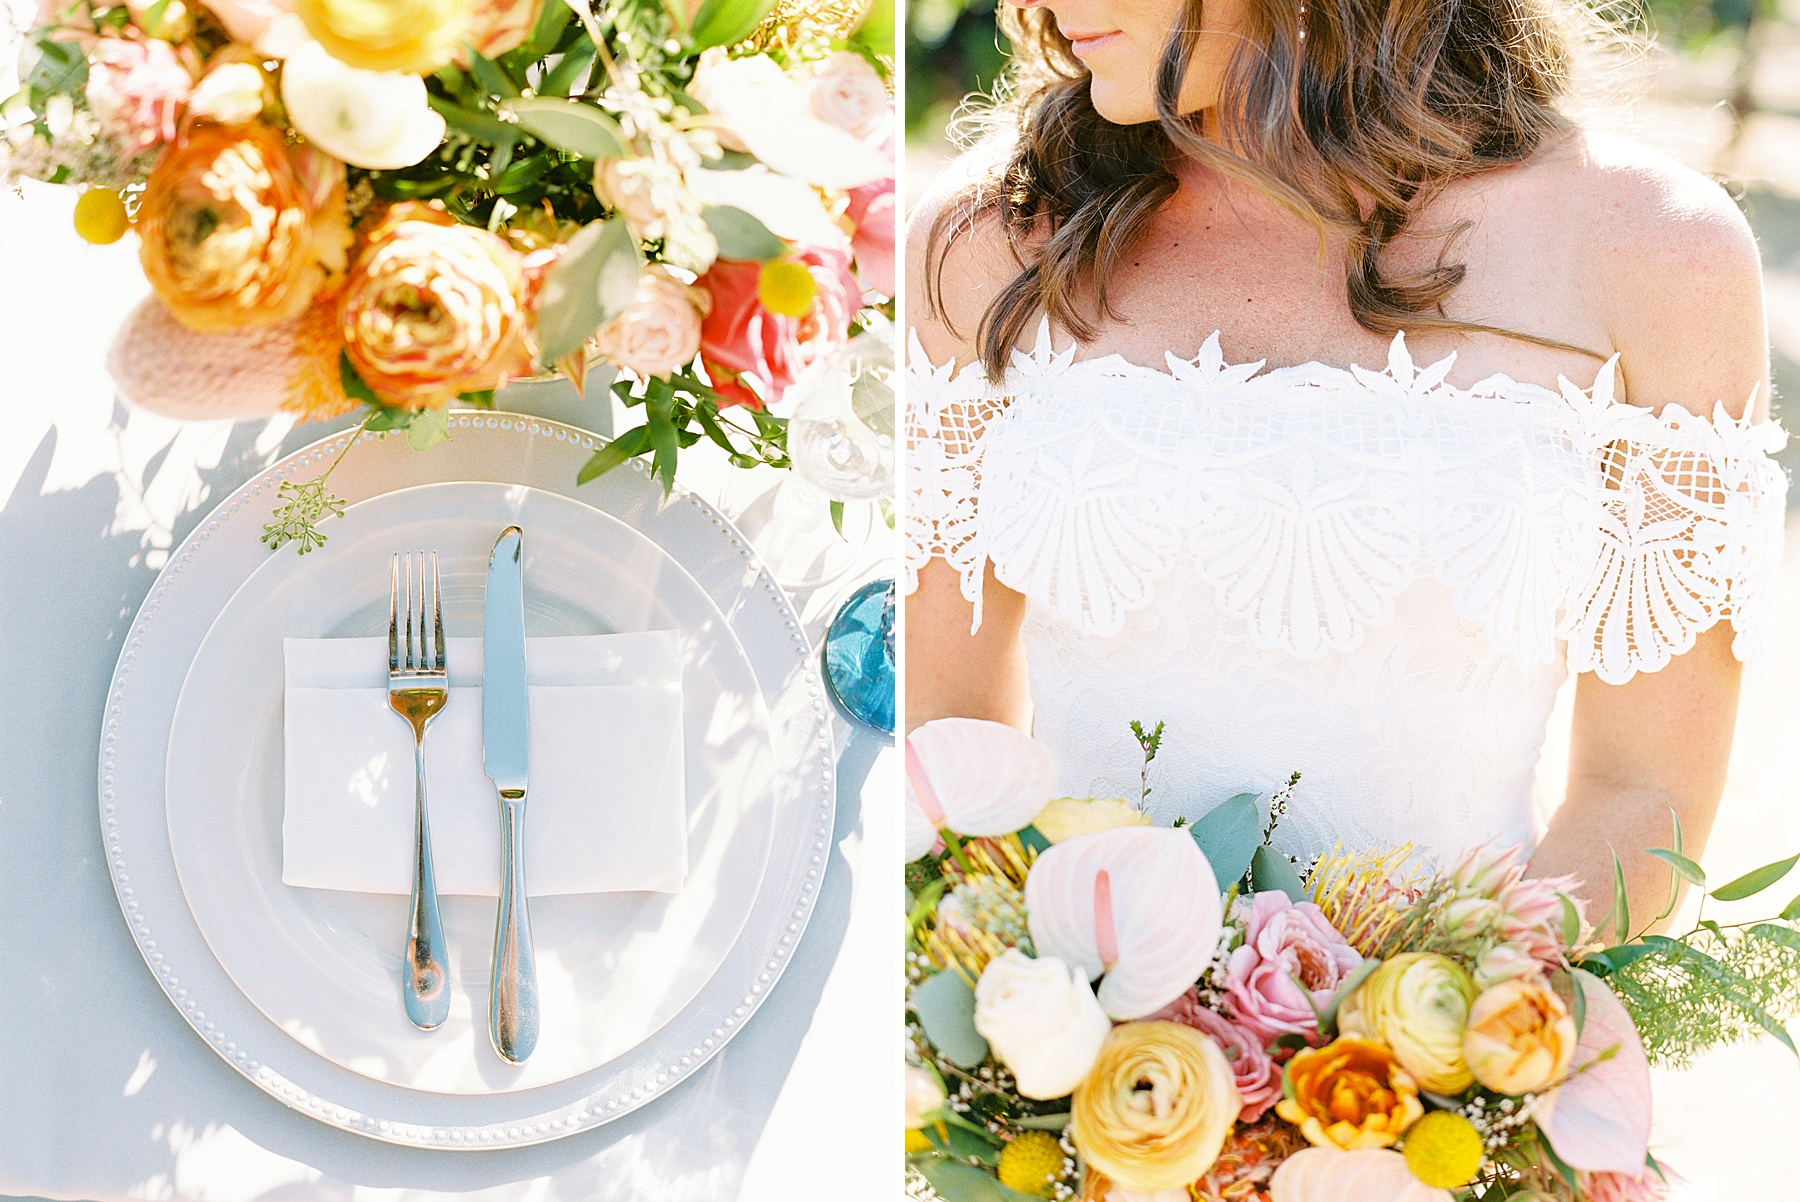 Wente Wedding with A Tropical Color Palette - Ashley & Mike - Featured on Inspired by This - Ashley Baumgartner_0011.jpg